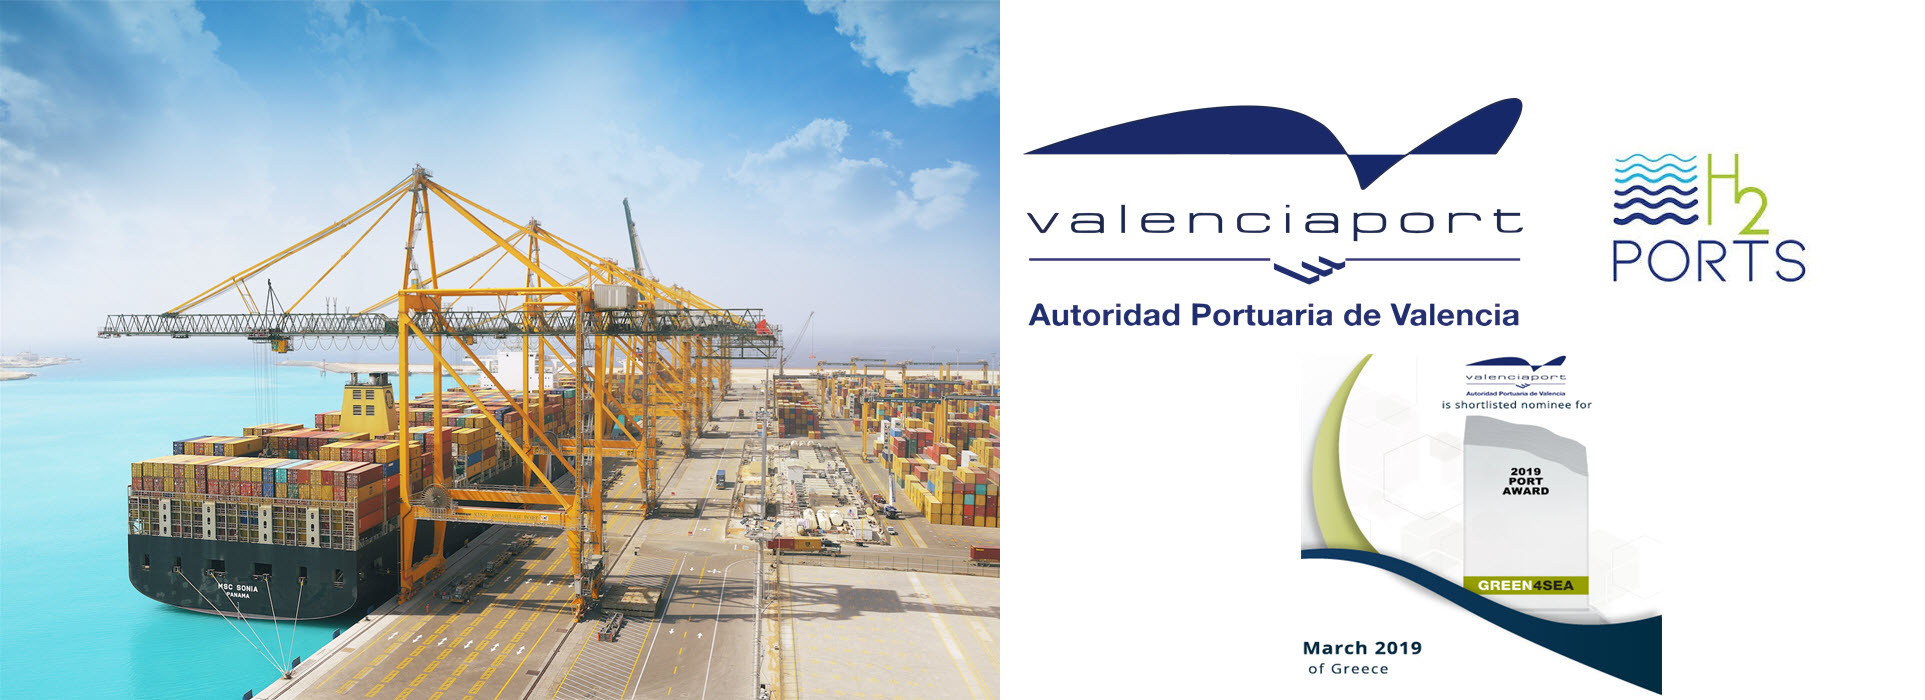 Port of Valencia 2019 Port Award for use of hydrogen